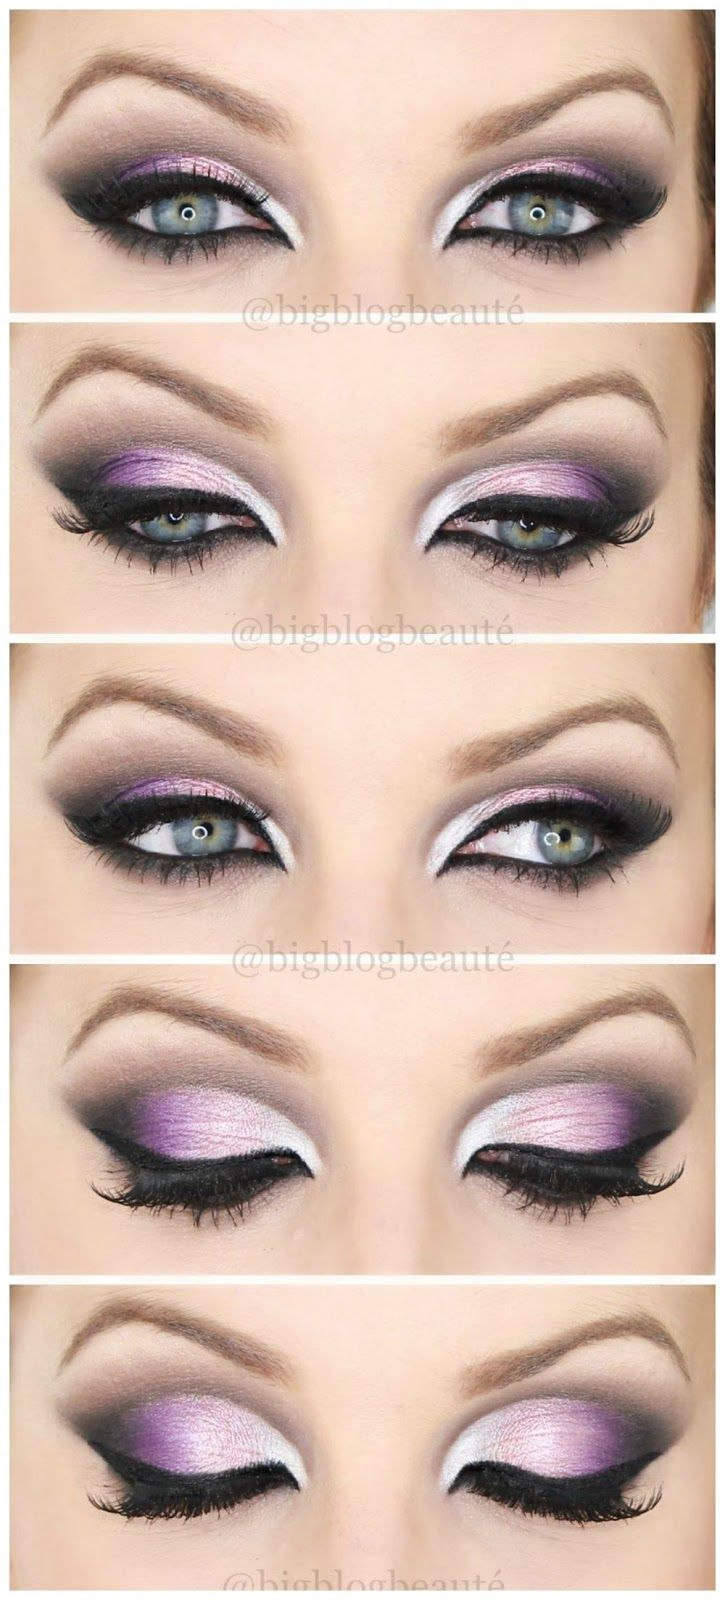 Arabic inspired - Tutoriel maquillage violet | Big Blog Beauté